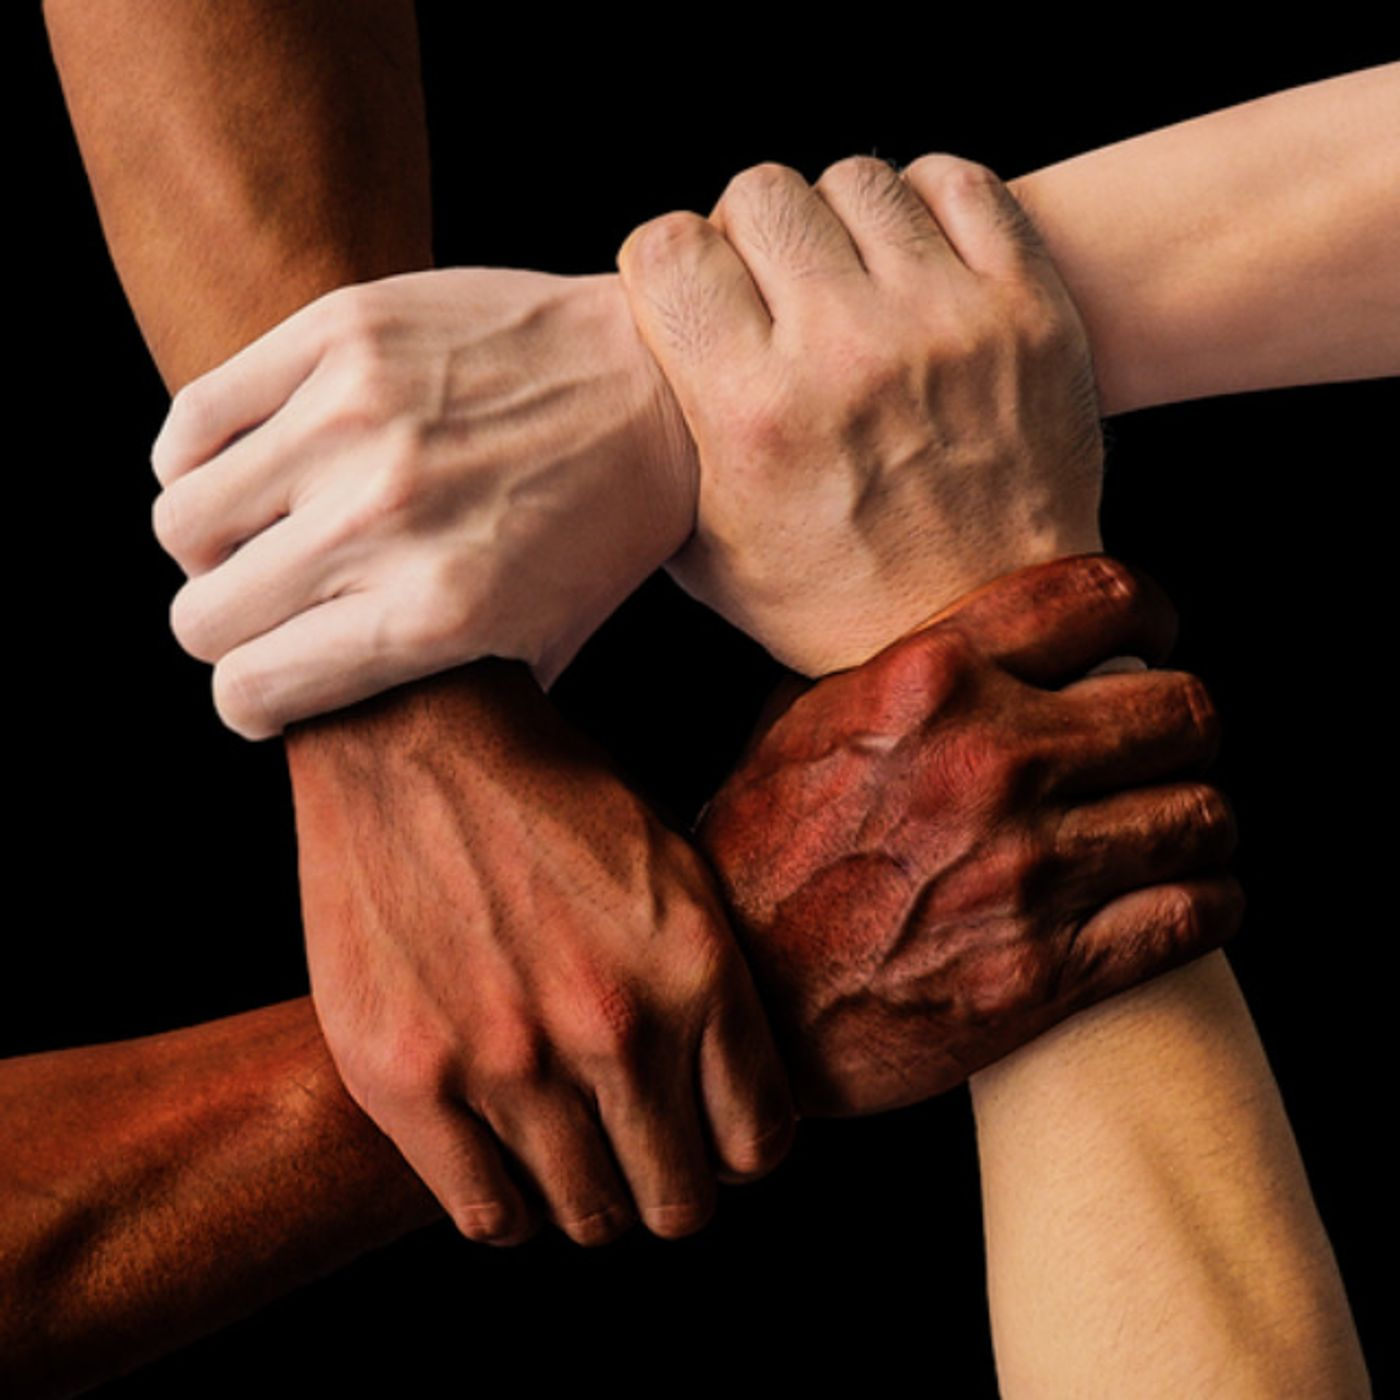 Why Racism and How to Heal it